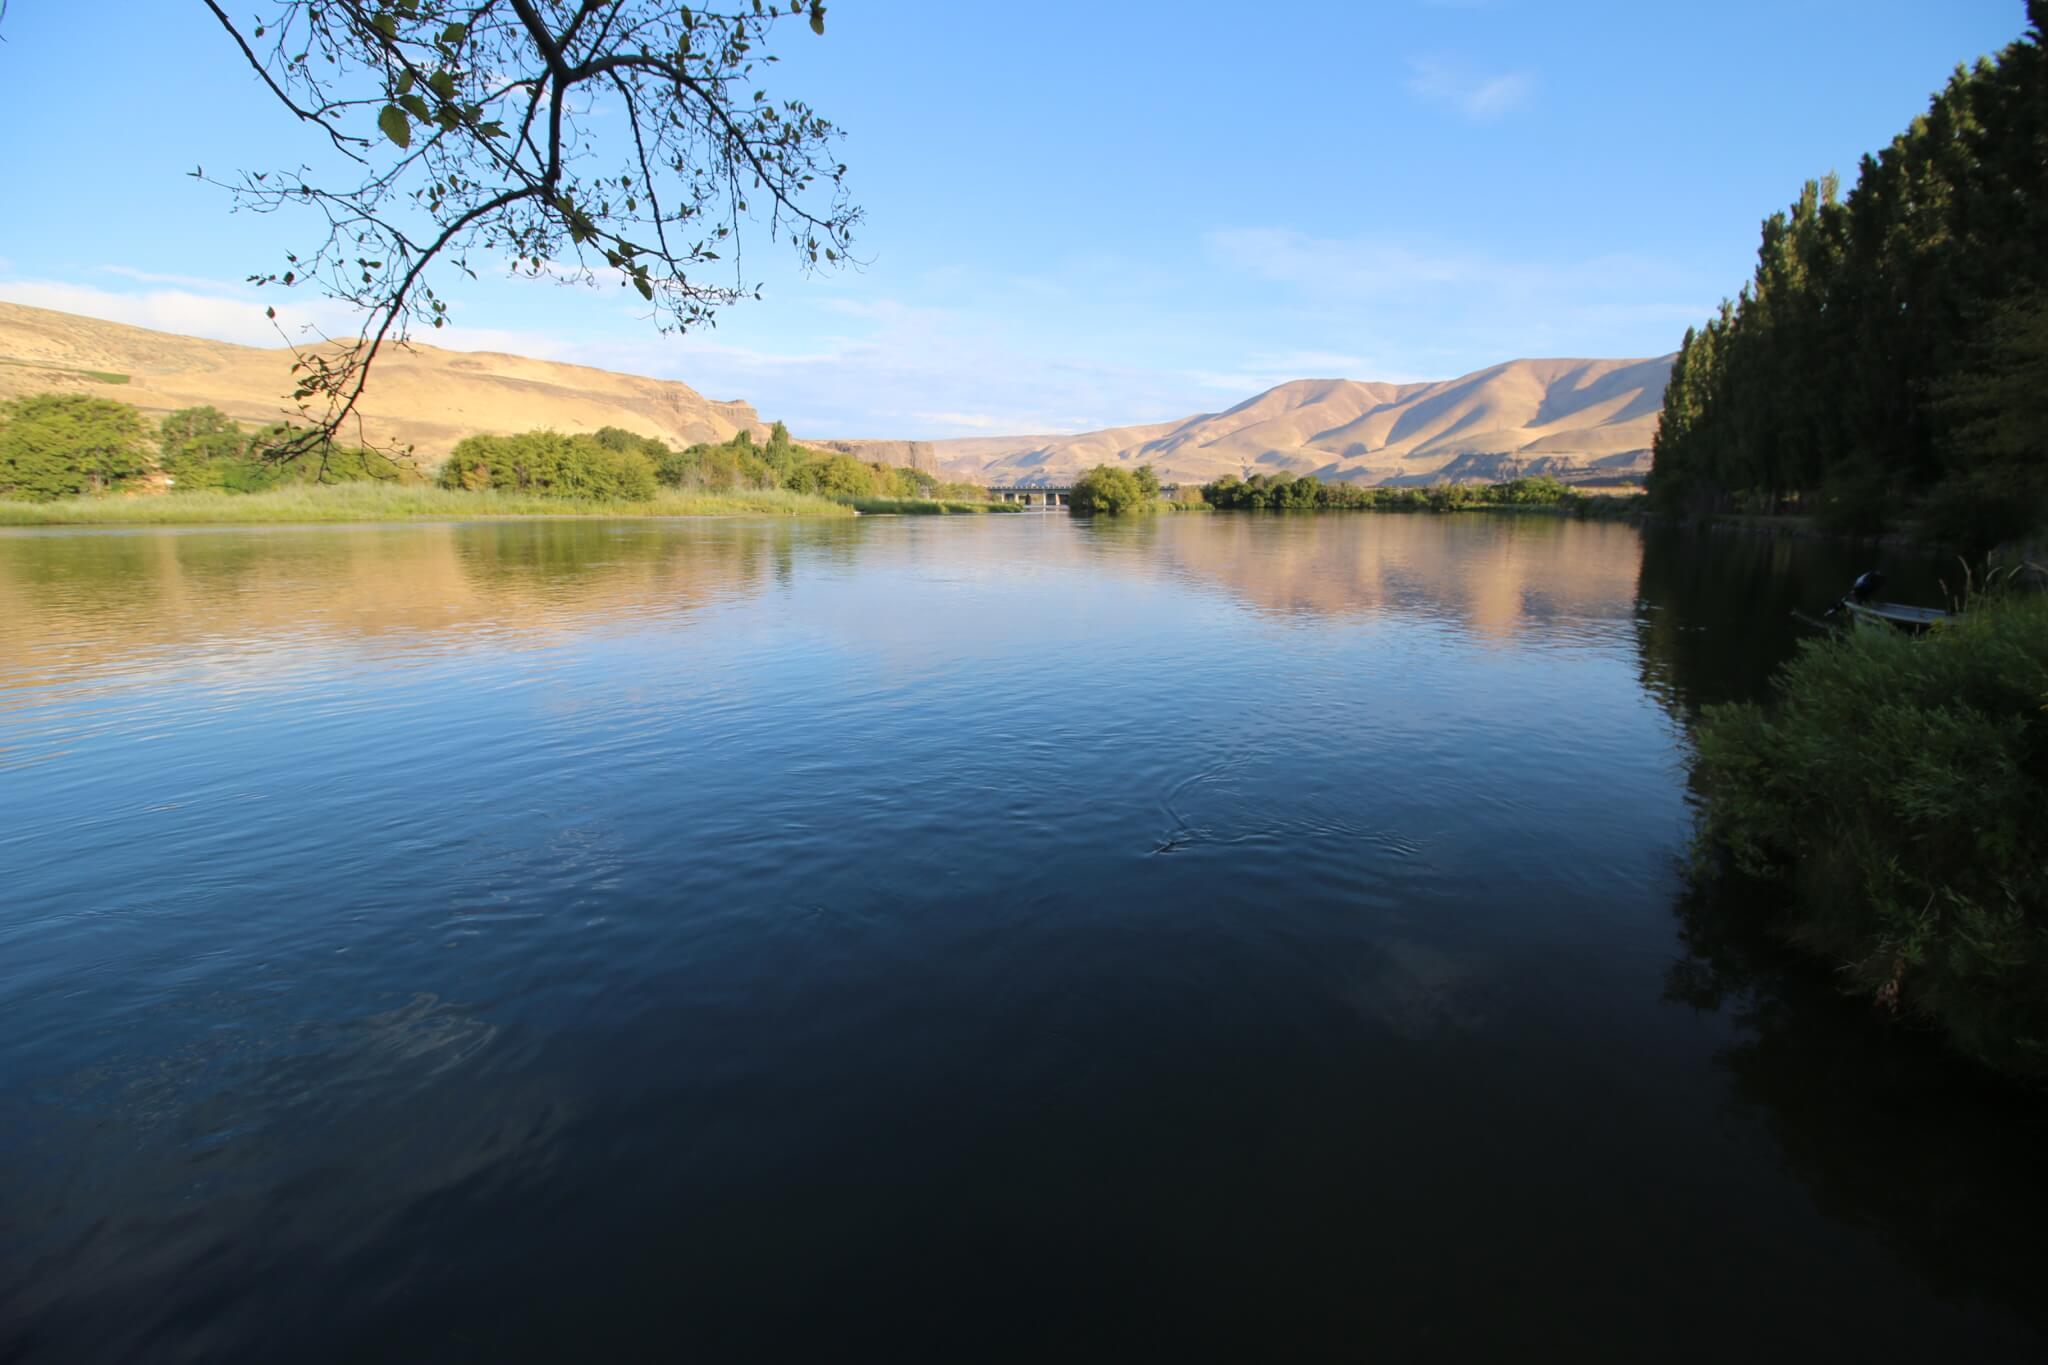 Best Lower Deschutes River Campgrounds - Deschutes River SRA View